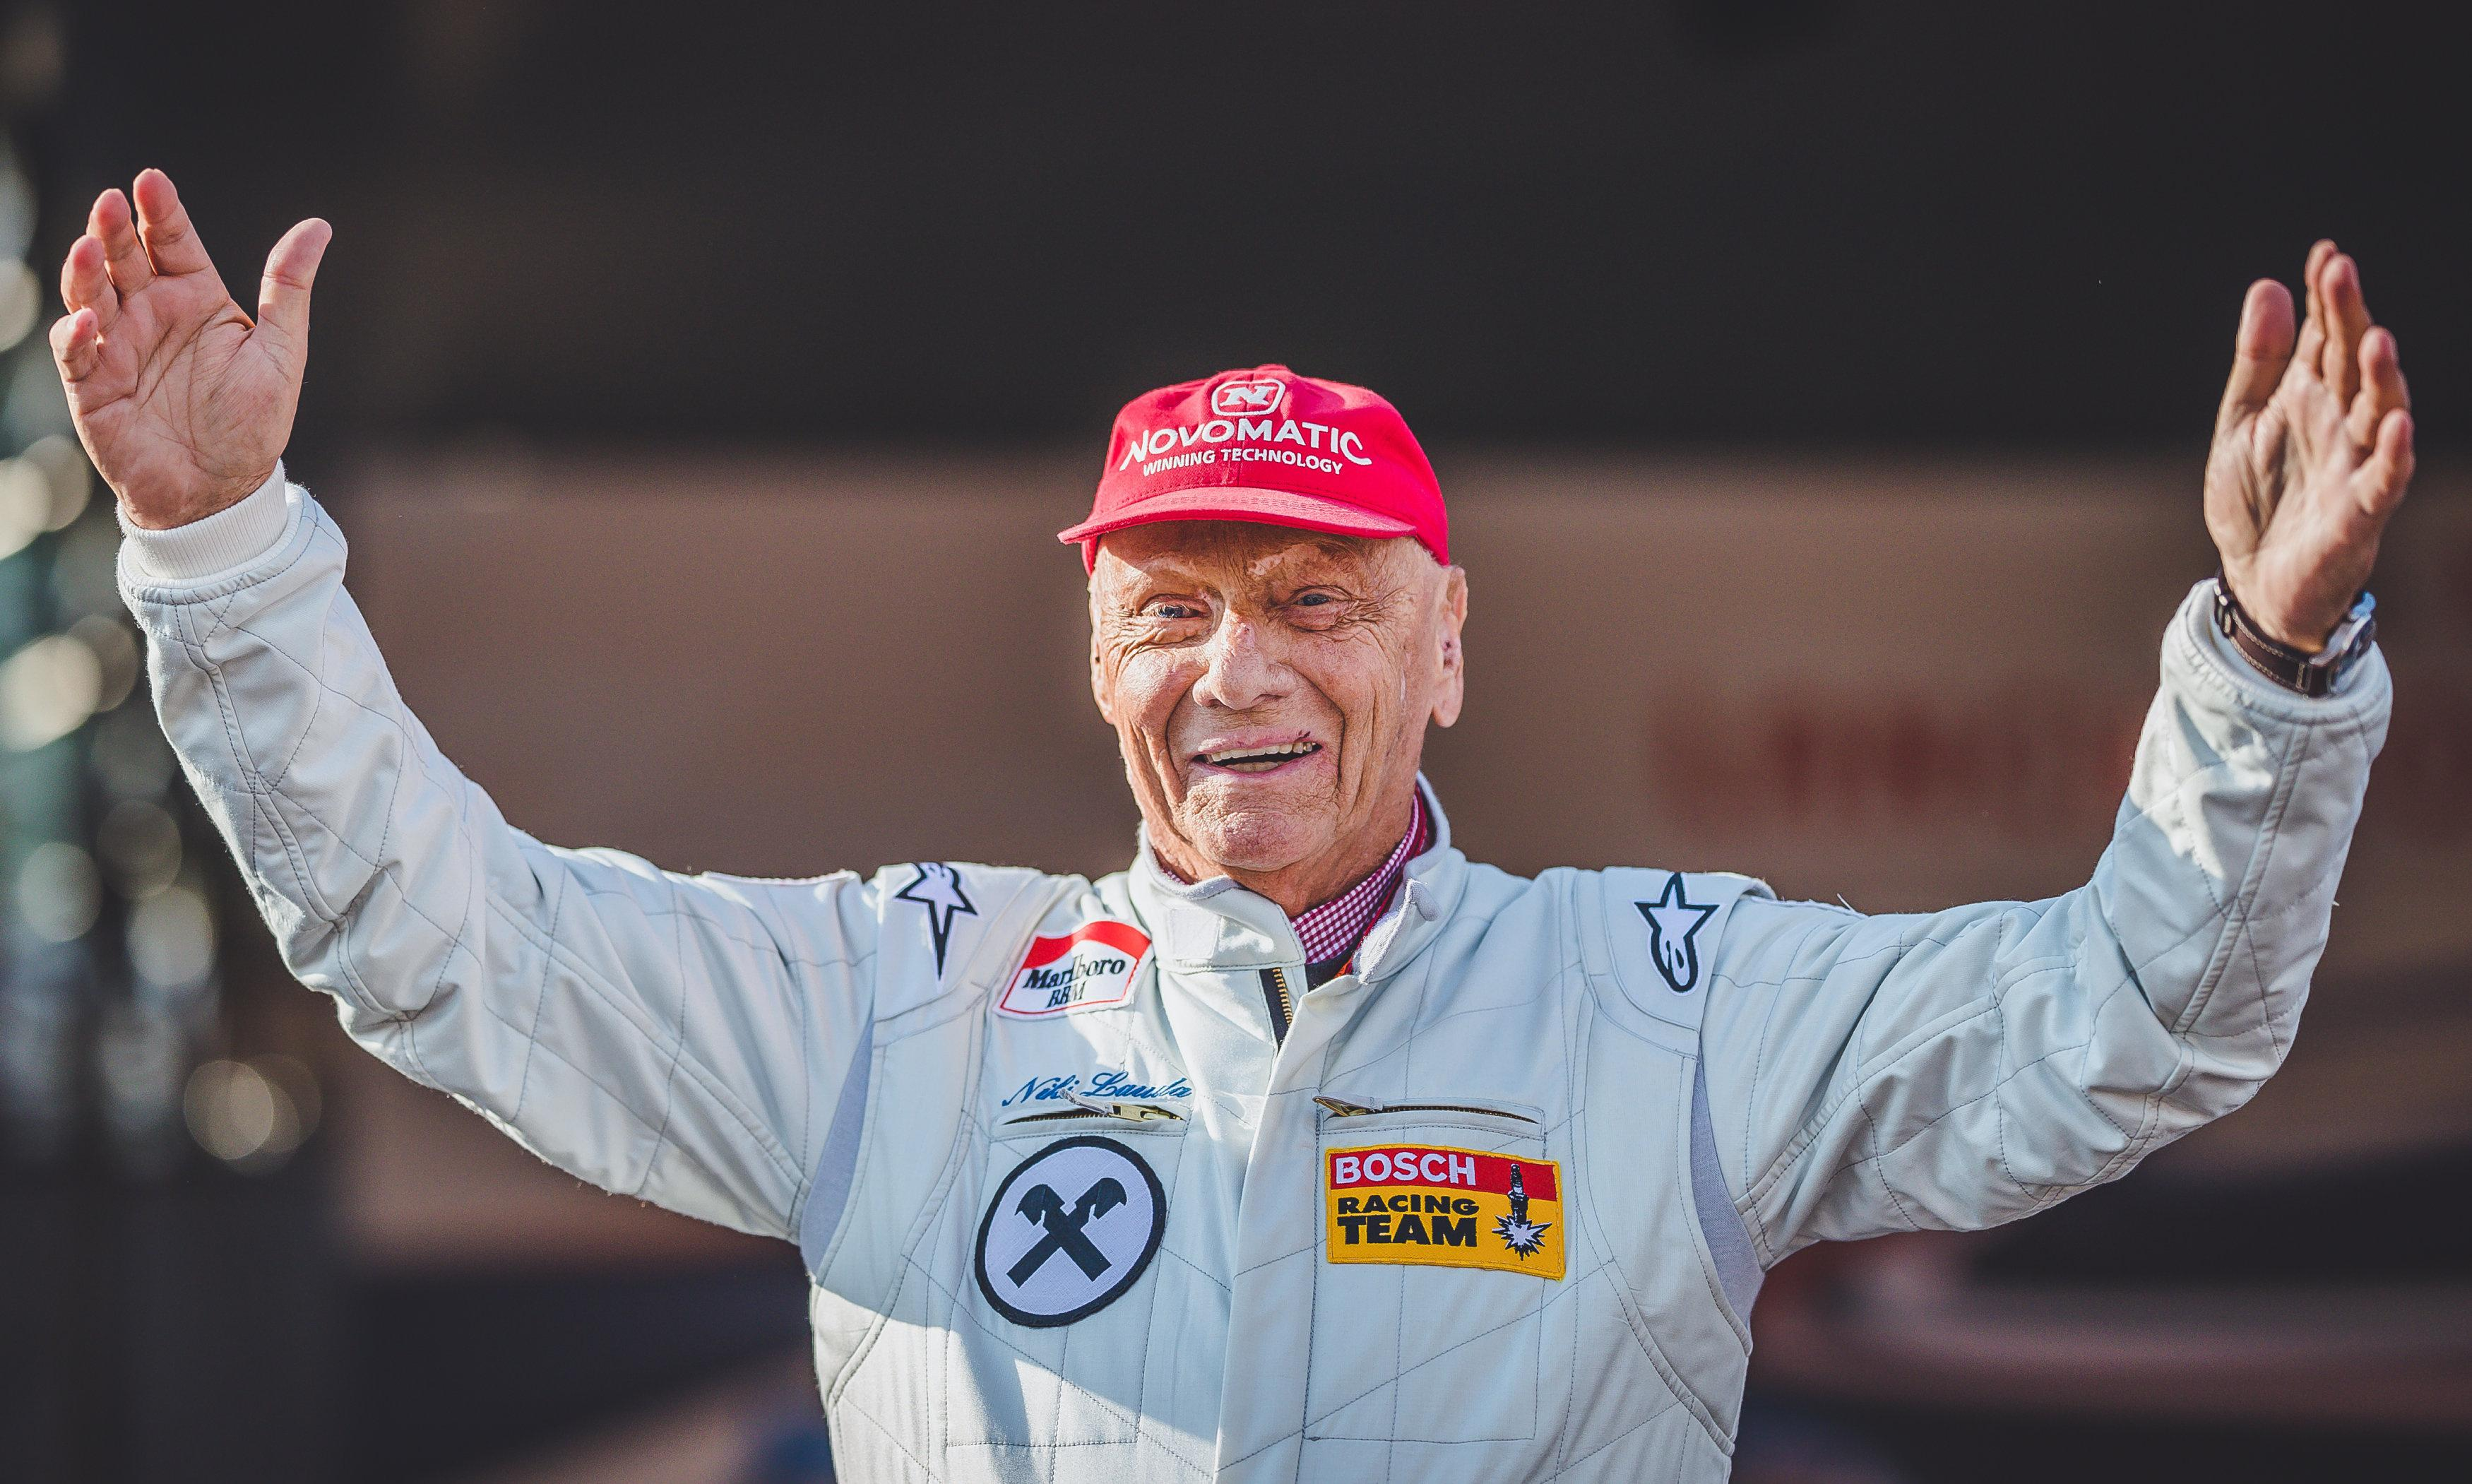 My friend Niki Lauda was a street fighter and a shining talent in F1